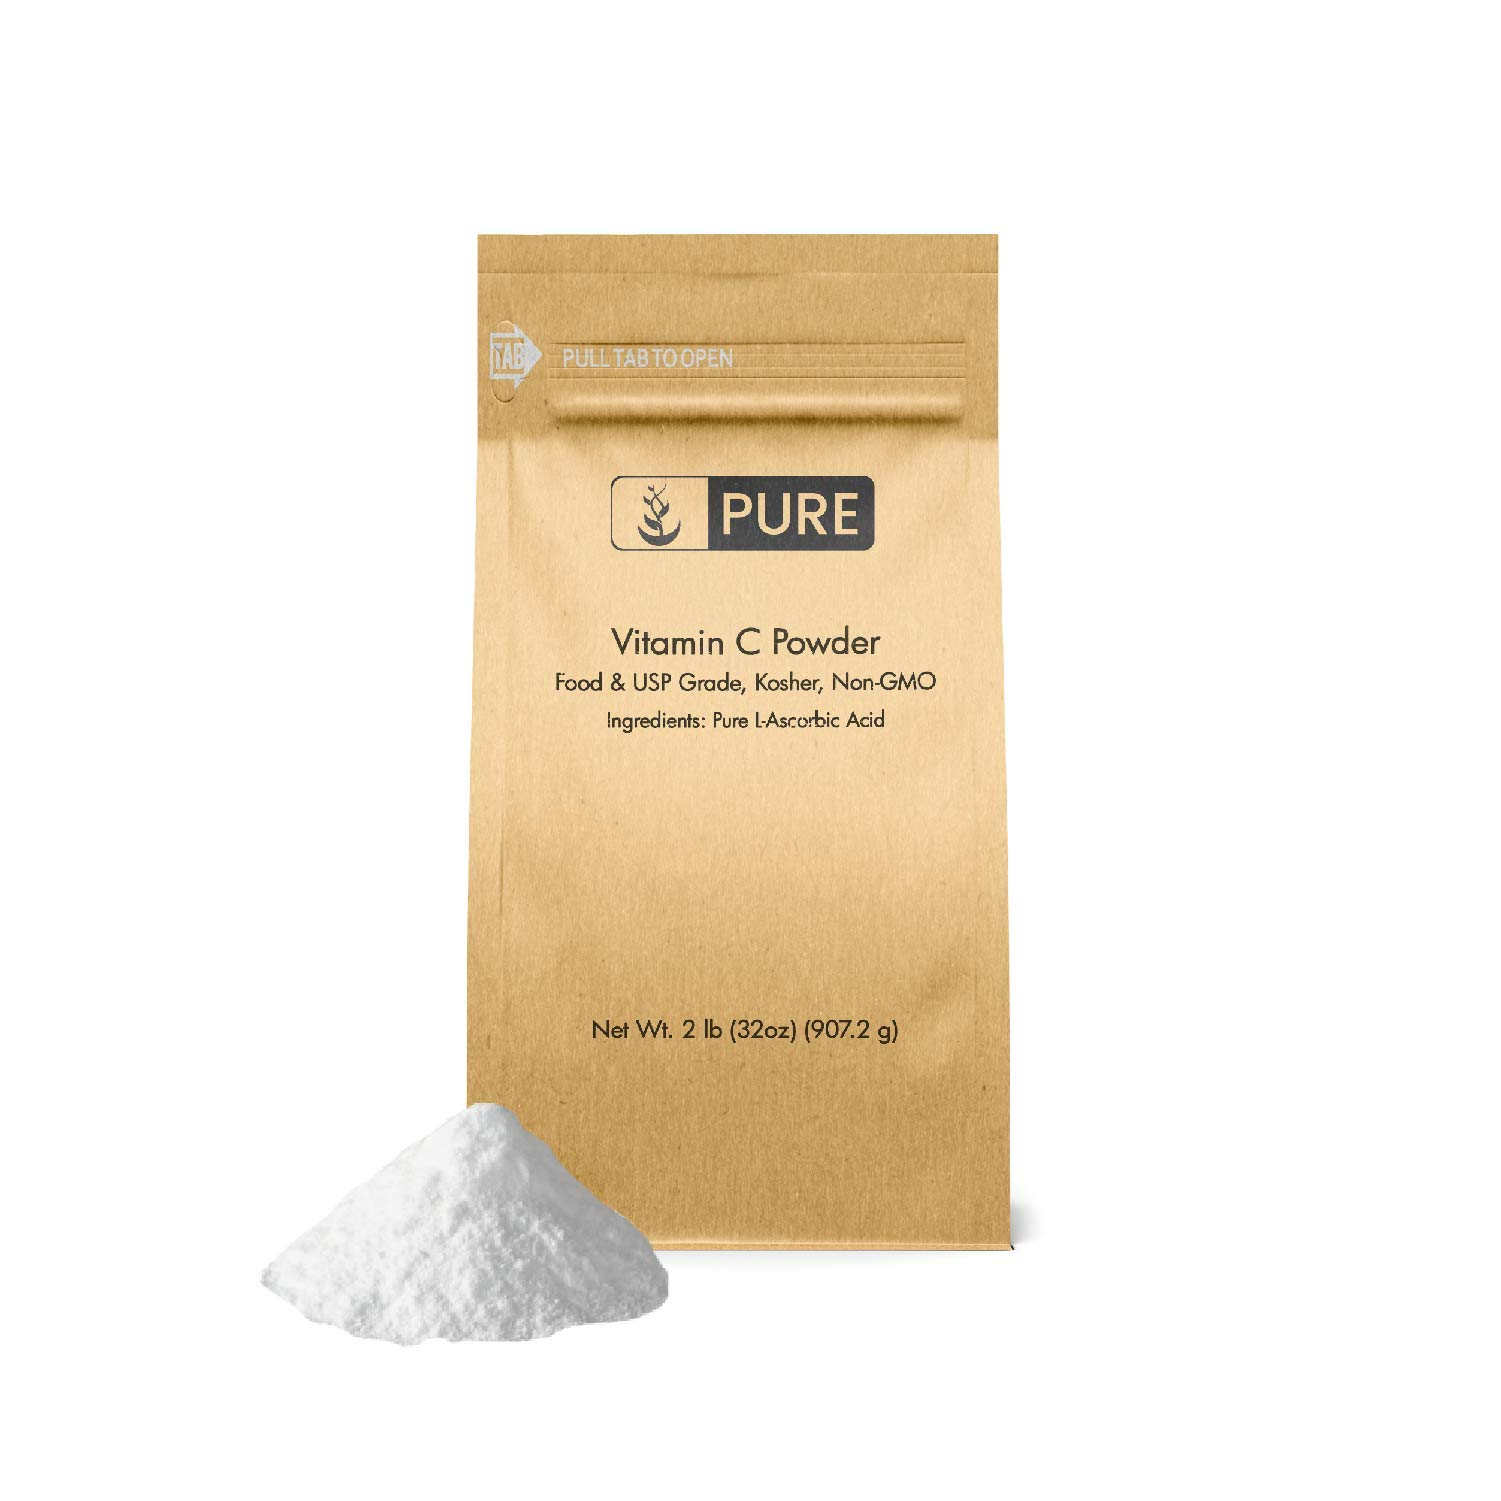 Vitamin C Powder (2 lb.) by Pure Organic Ingredients, Eco-Friendly Packaging, L-Ascorbic Acid, Antioxidant, Boost Immune System, DIY Skin Care by Pure Organic Ingredients